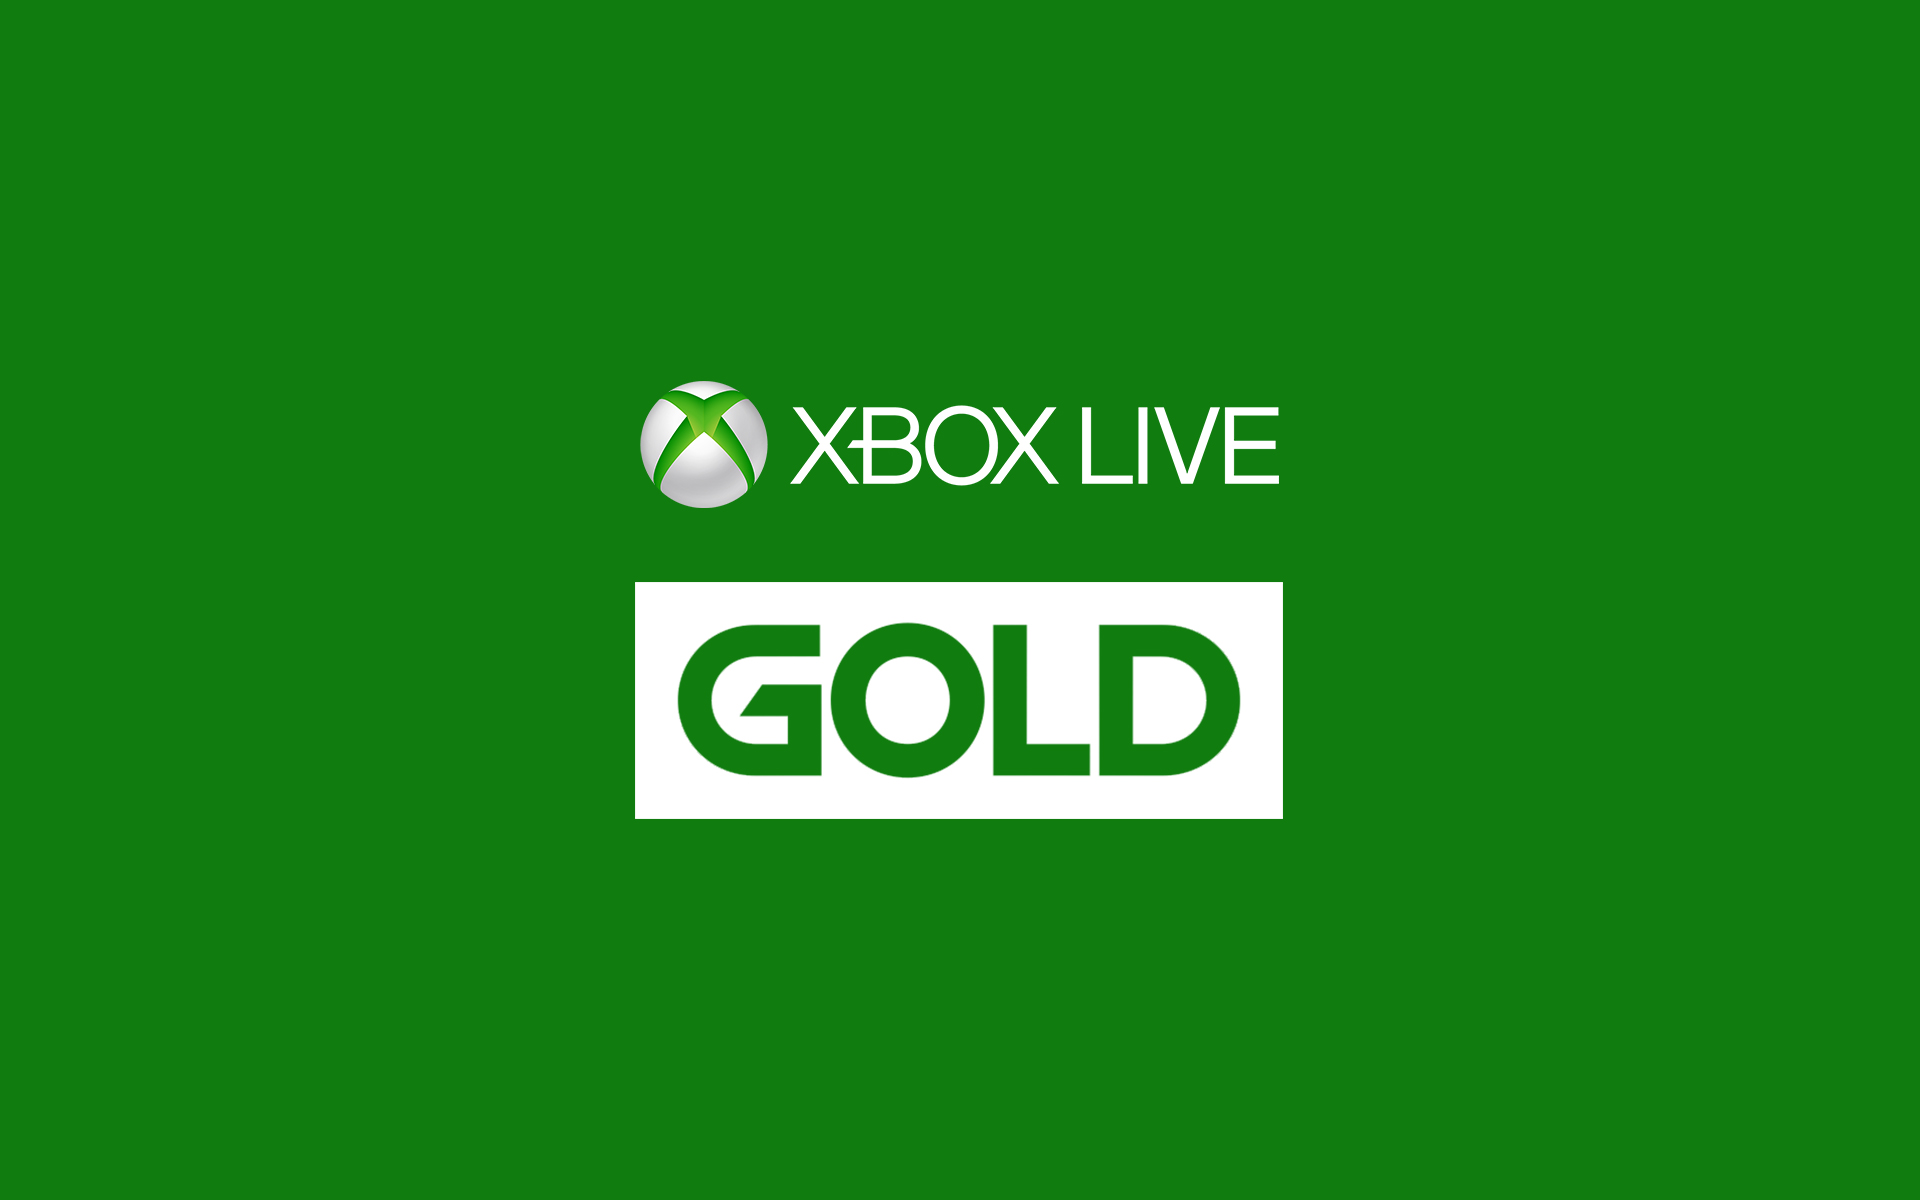 3 Meses - Xbox Live Gold cover